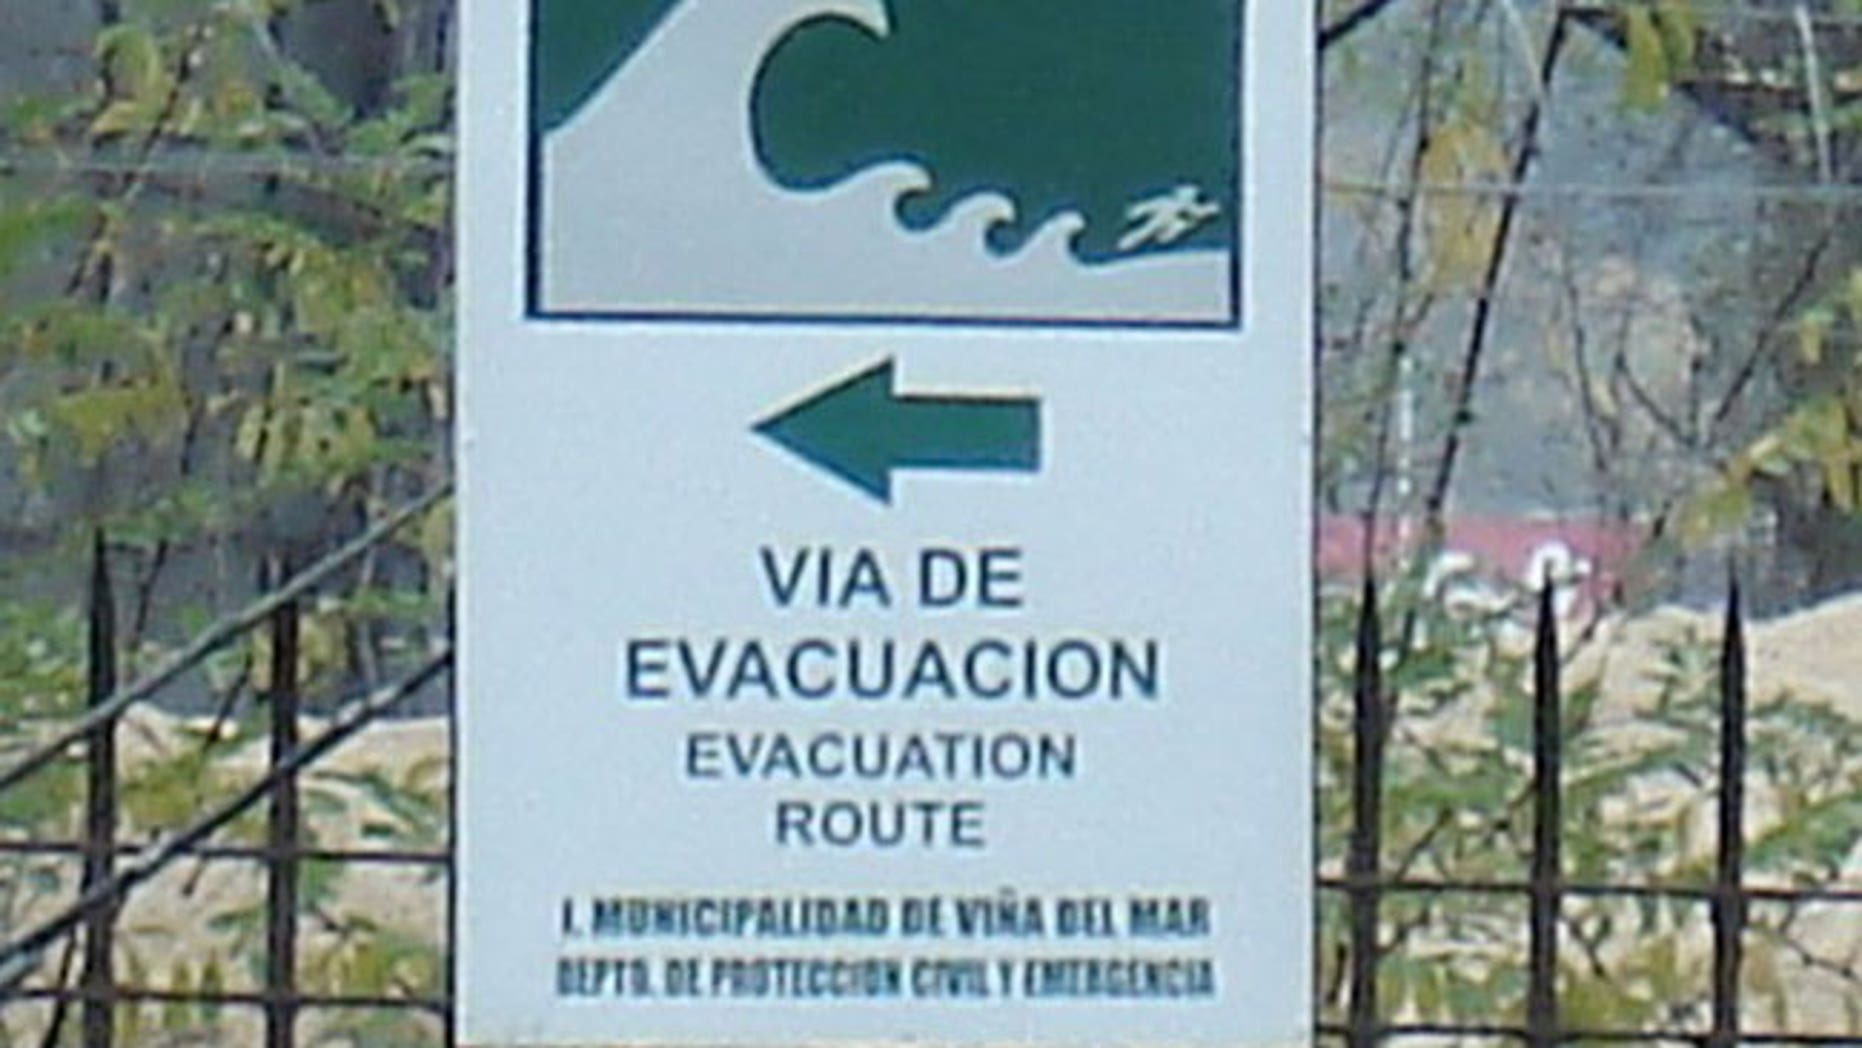 An evacuation sign in Chile. #paulogustavo tweets that Chile is prepared for catastrophe after multiple earthquake struck Viña del Mar in 1983.